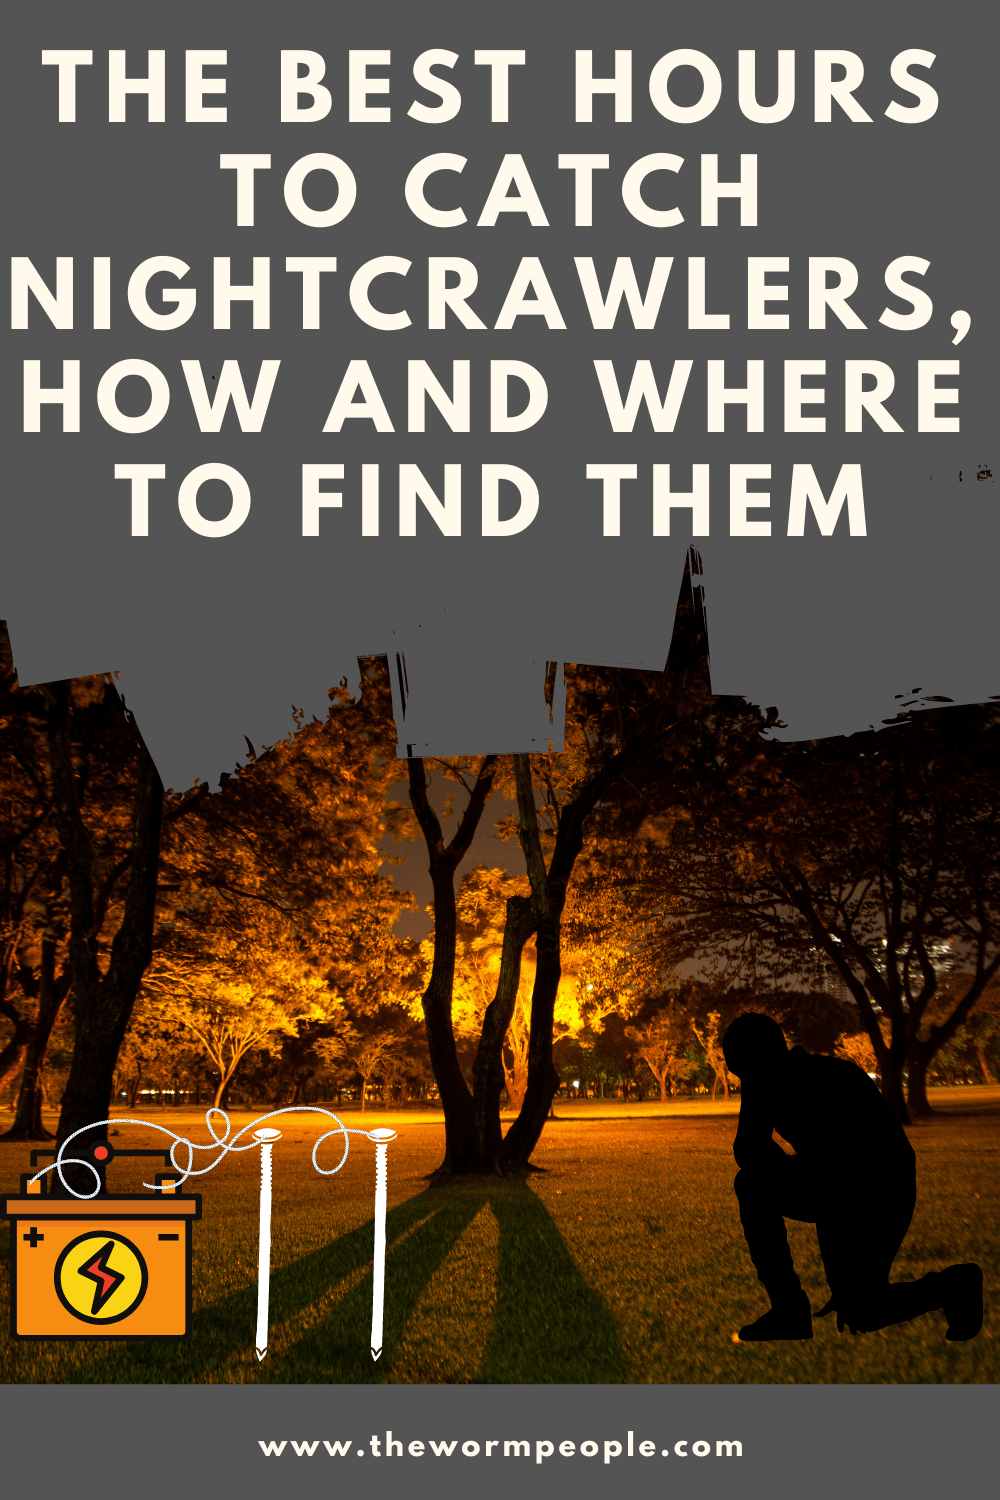 when-do-nightcrawlers-come-out-at-night